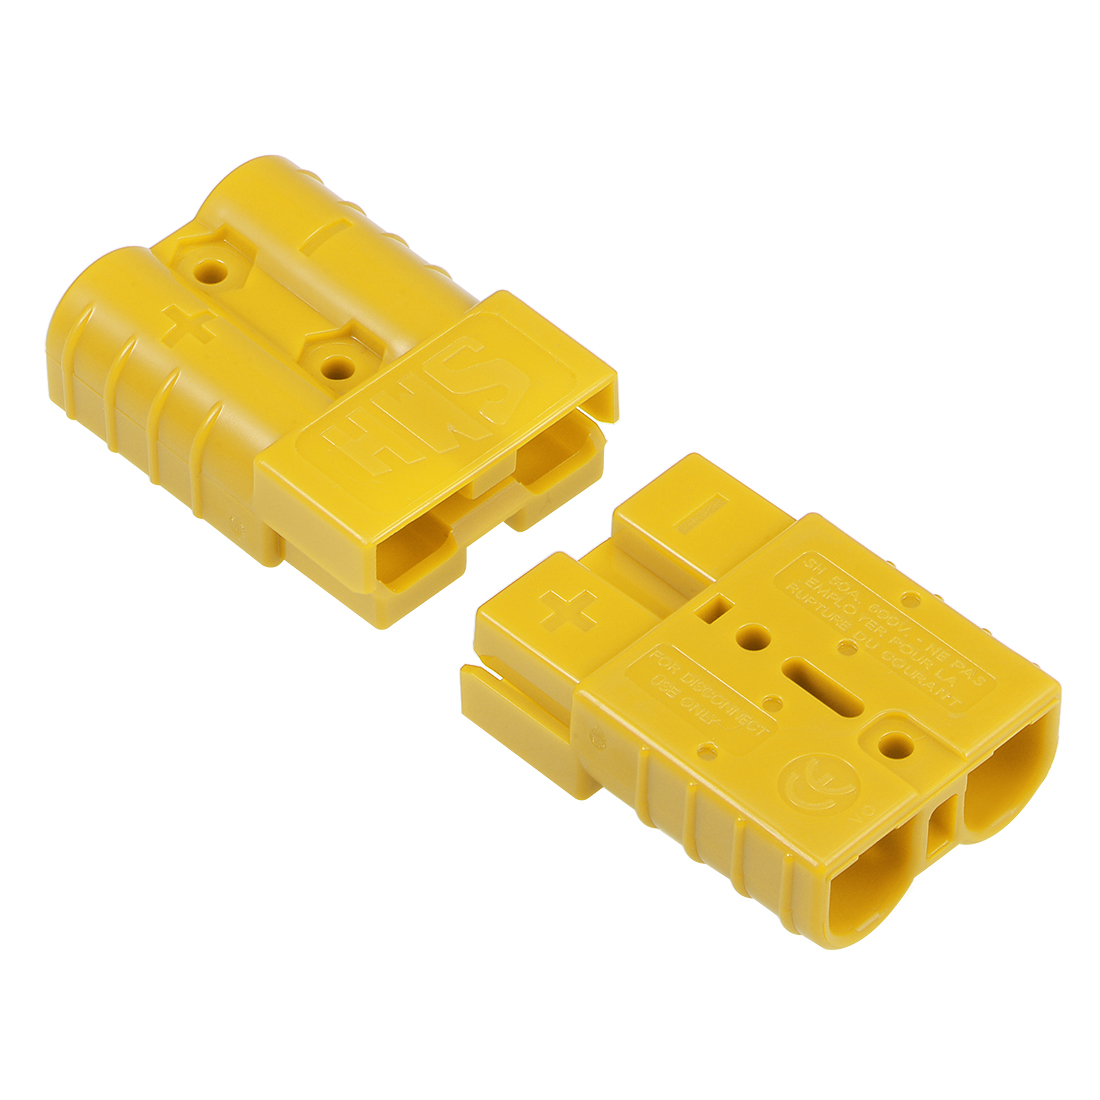 6 Gauge Battery Quick Connect Disconnect 50A Wire Connector, Yellow, 2pcs